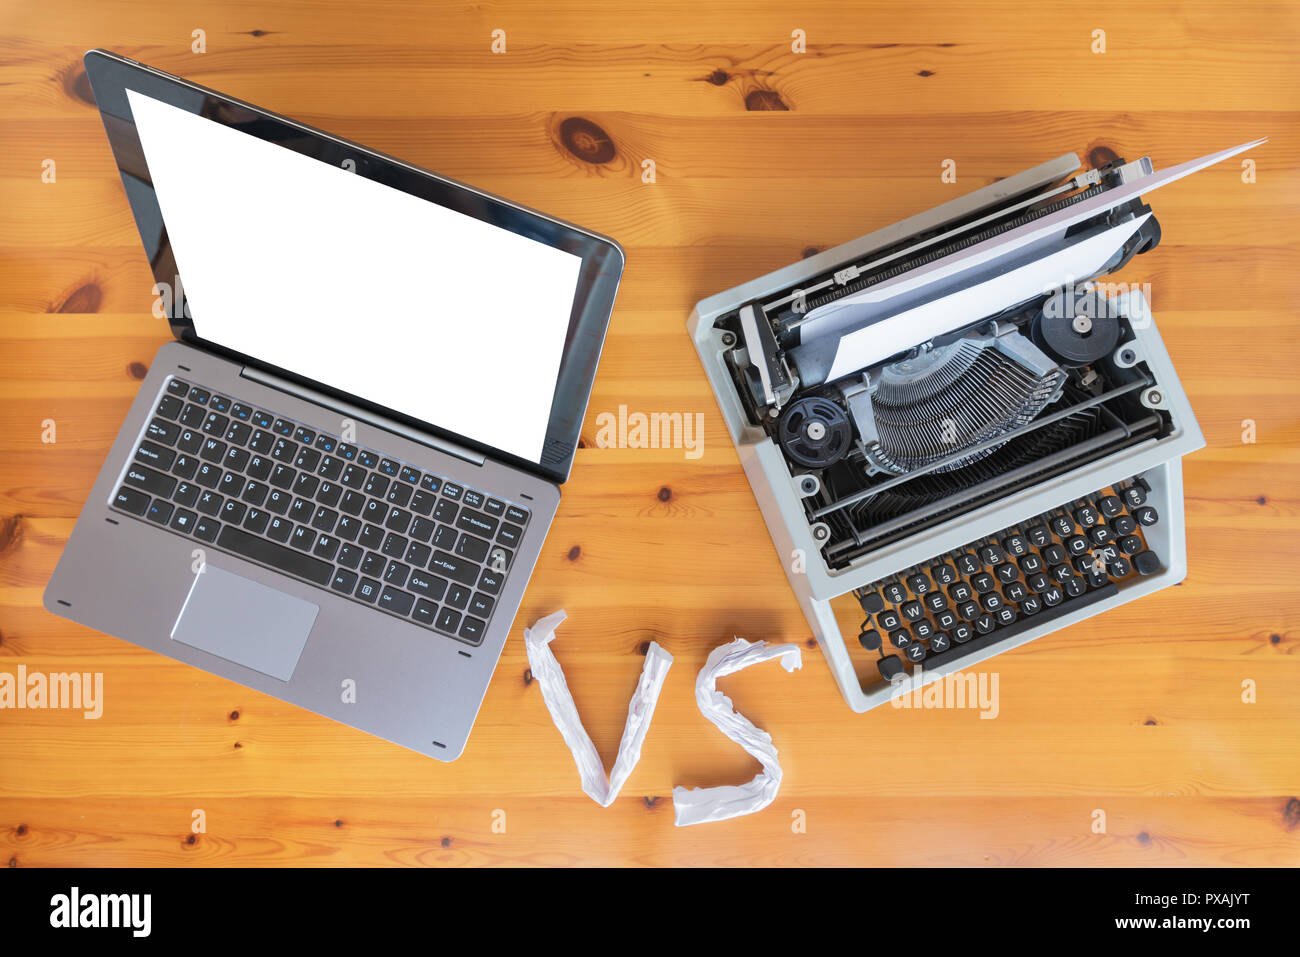 old technology vs new technology pictures